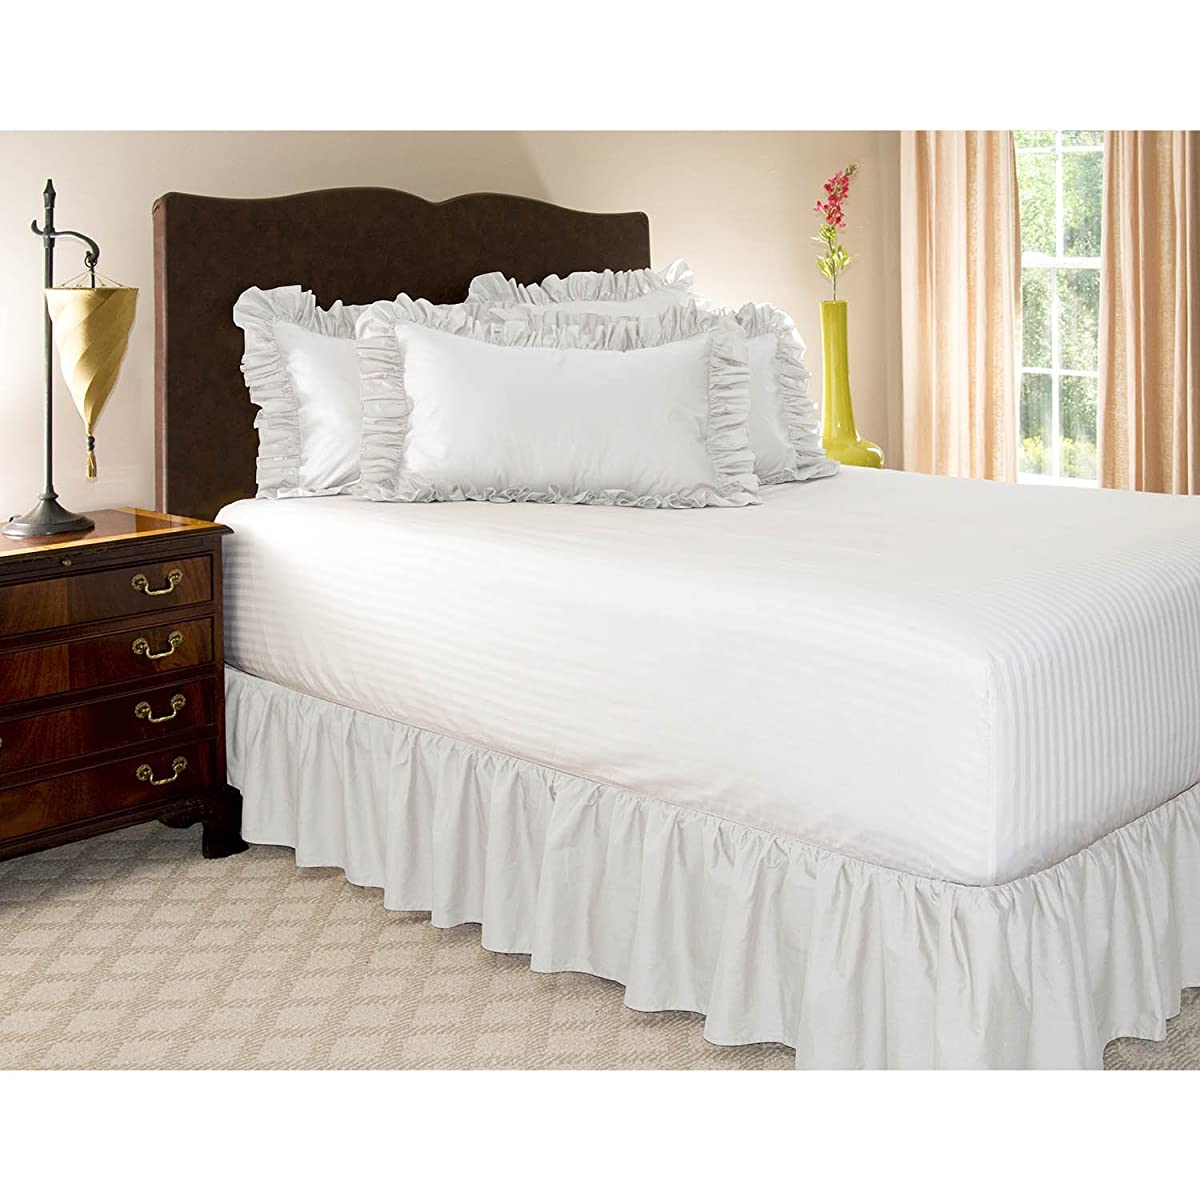 Ruckel MFG Harmony Lane Dust Ruffled Full Bed Skirt with Platform, White